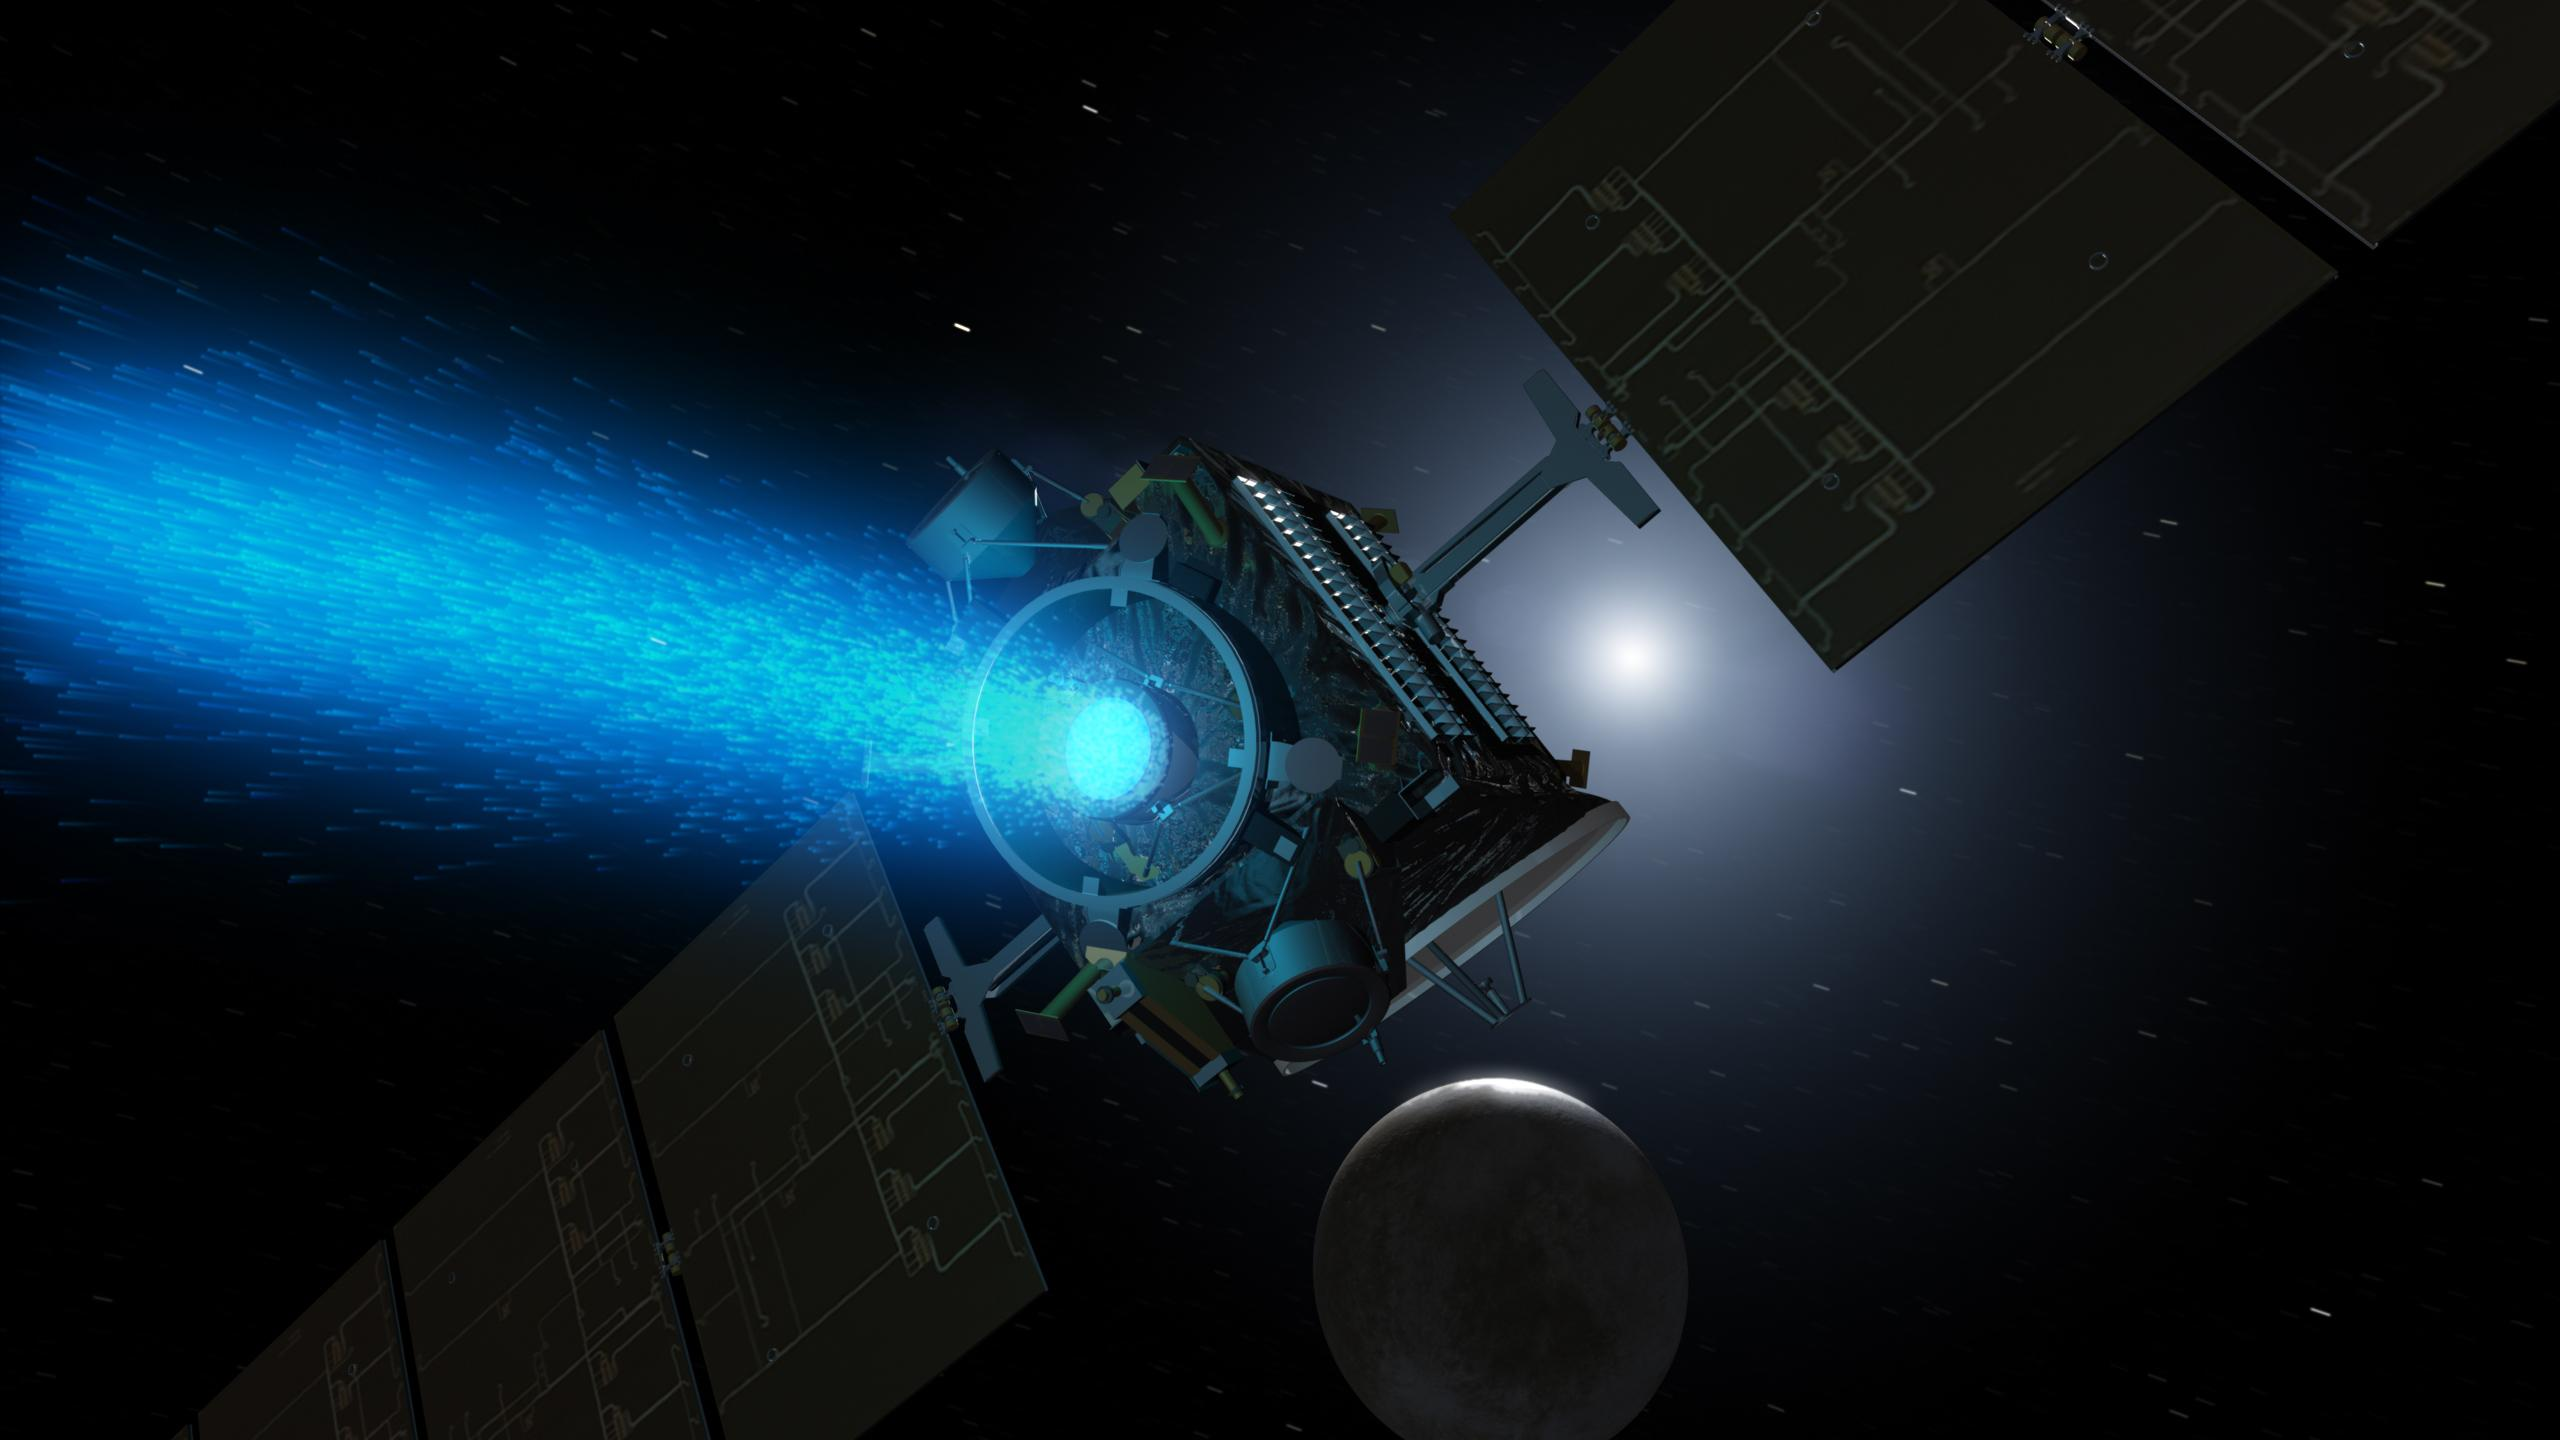 Nasa To Host Live Chat On Successful Mission To Asteroid Belt Nasa